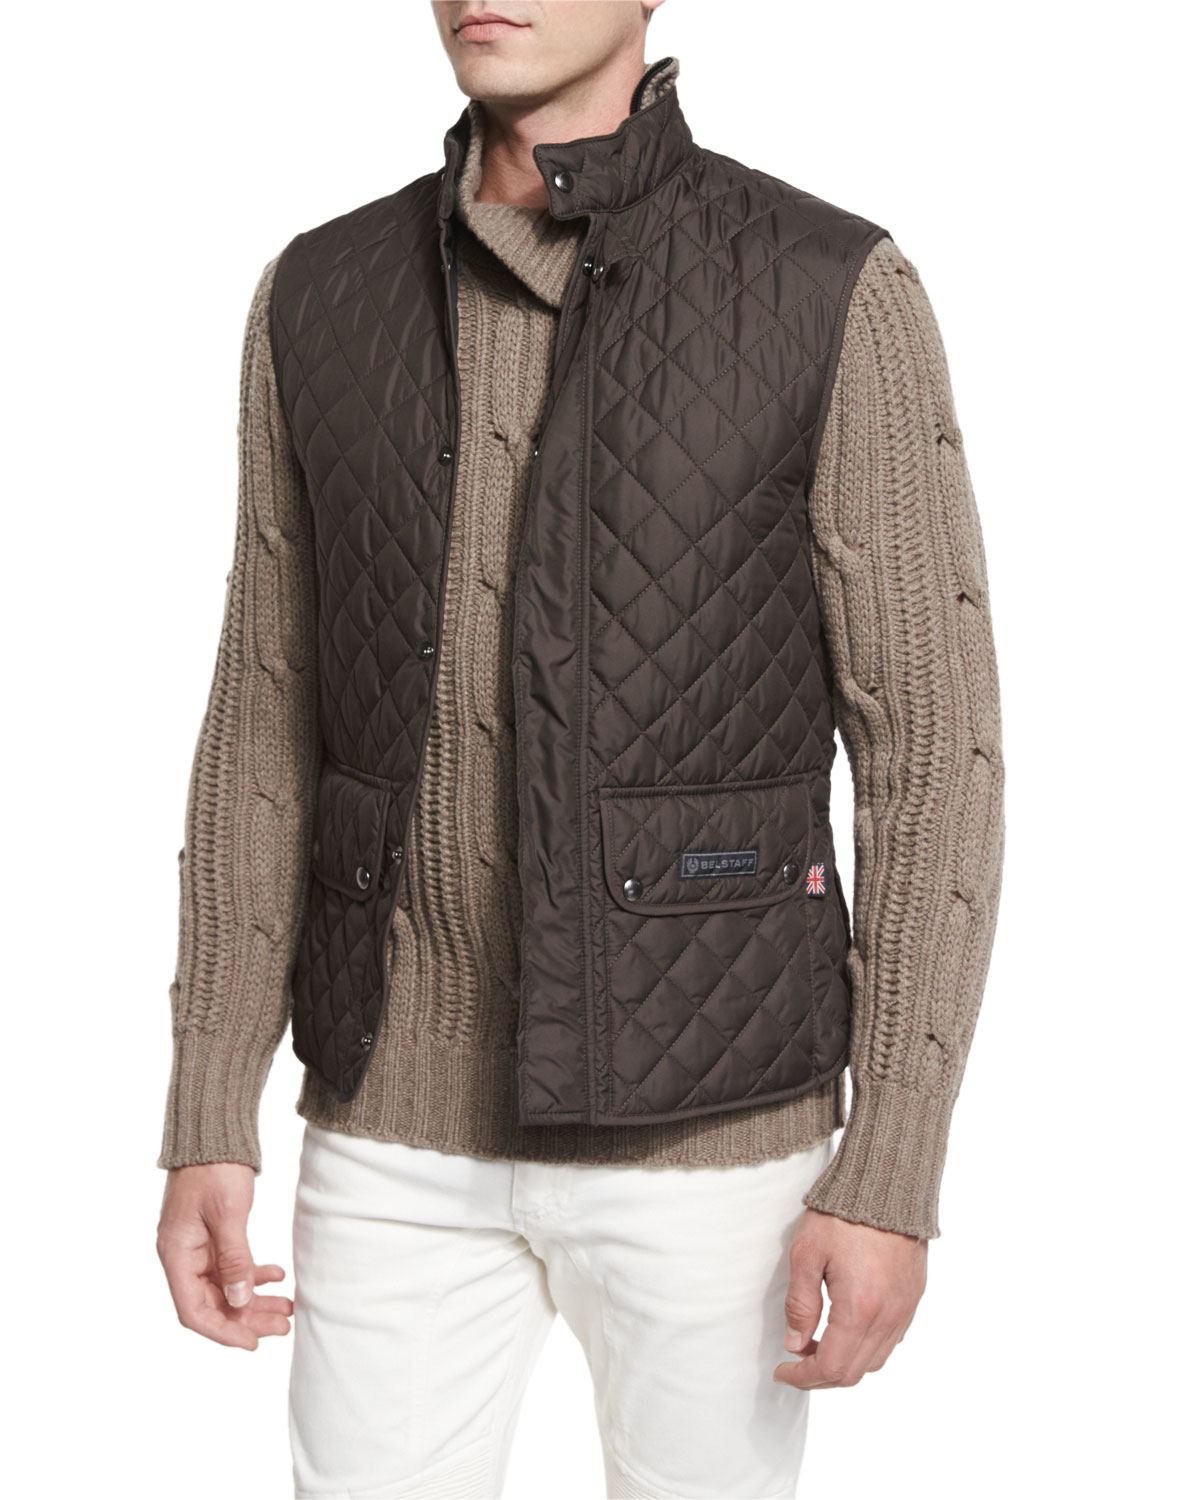 Browse our men's jackets and vests for handsome men's outerwear; shop Orvis now for men's field coats, quilted vests, and exquisite jackets by Barbour. items found for keyword in Orvis. HELP. RT7 Quilted Vest $ Denver II Leather Jacket $1, Hybrid Wool Fleece Jacket $